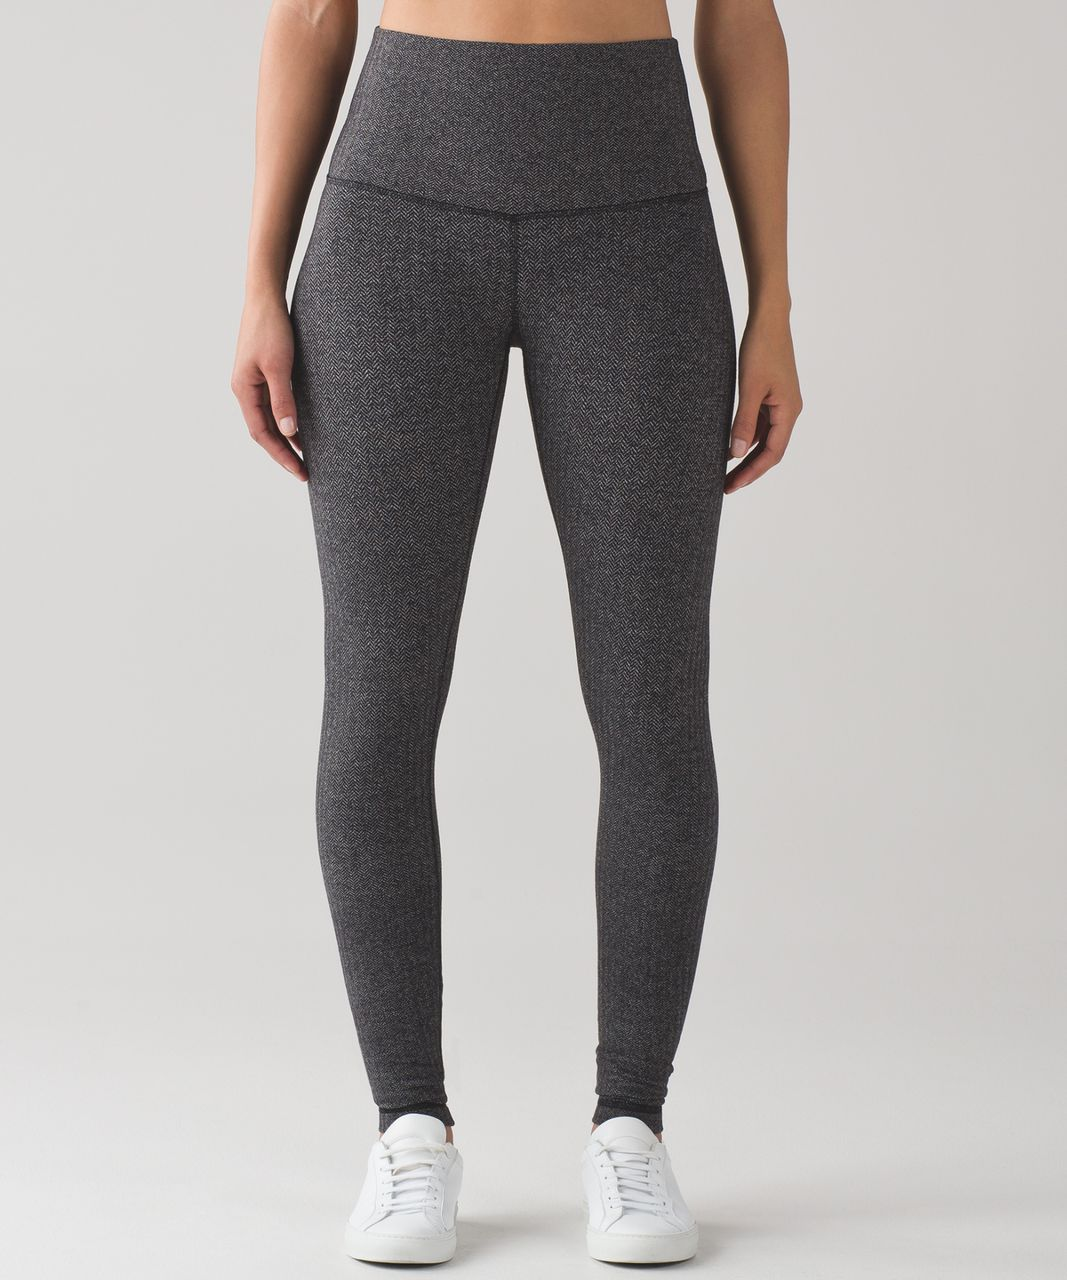 2d9351aeba Lululemon Wunder Under Pant (Hi-Rise) - Heathered Herringbone Heathered  Black Black - lulu fanatics